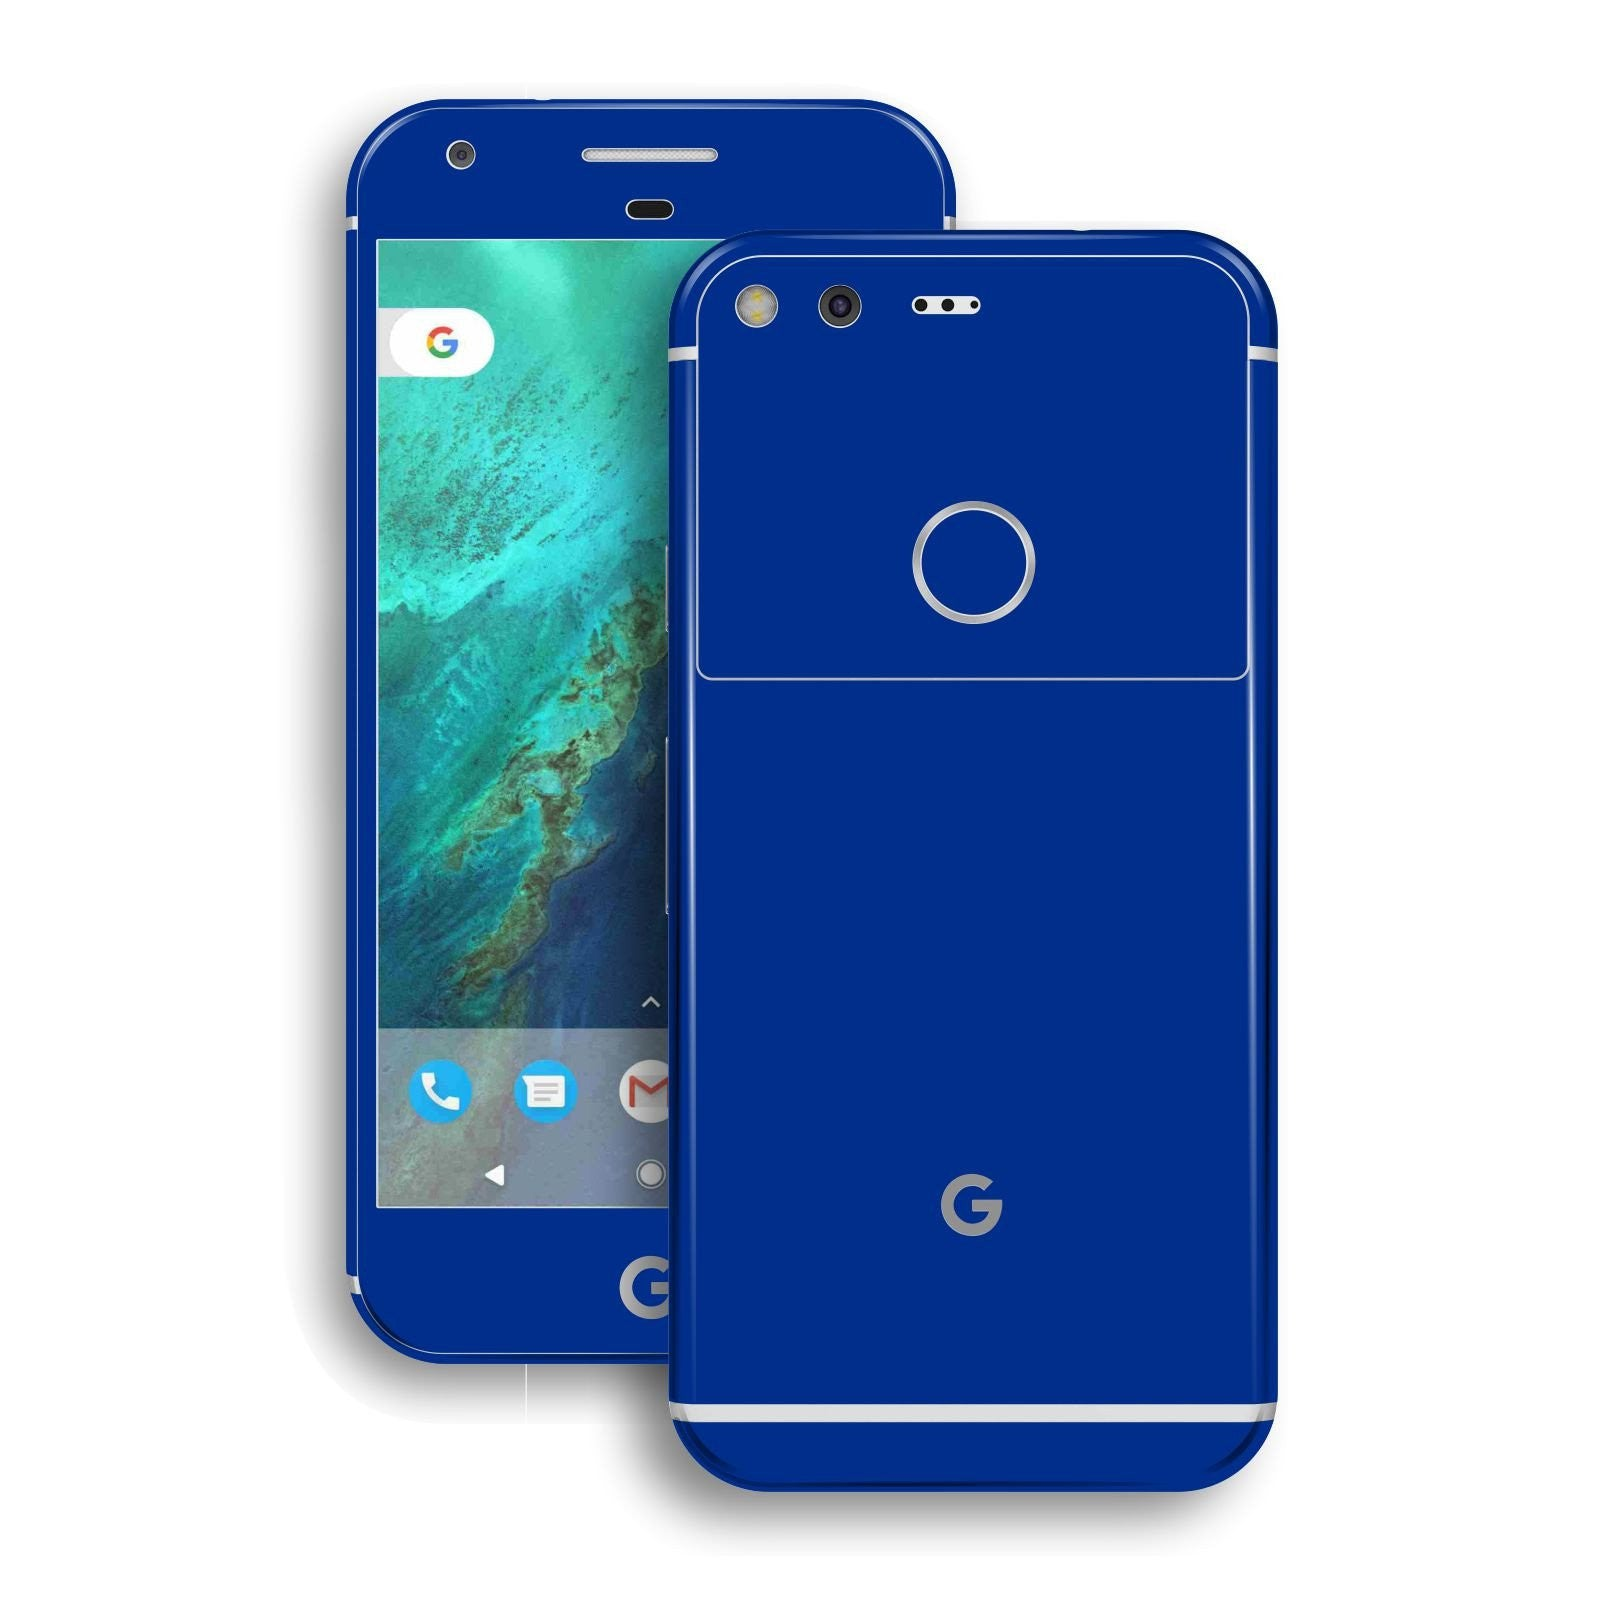 Google Pixel XL Glossy Royal Blue Skin Wrap Decal by EasySkinz